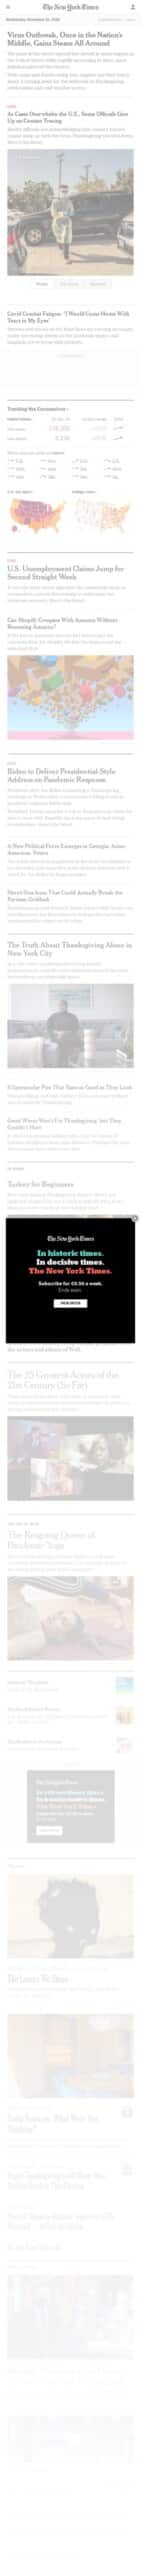 The New York Times Company Store Coupon